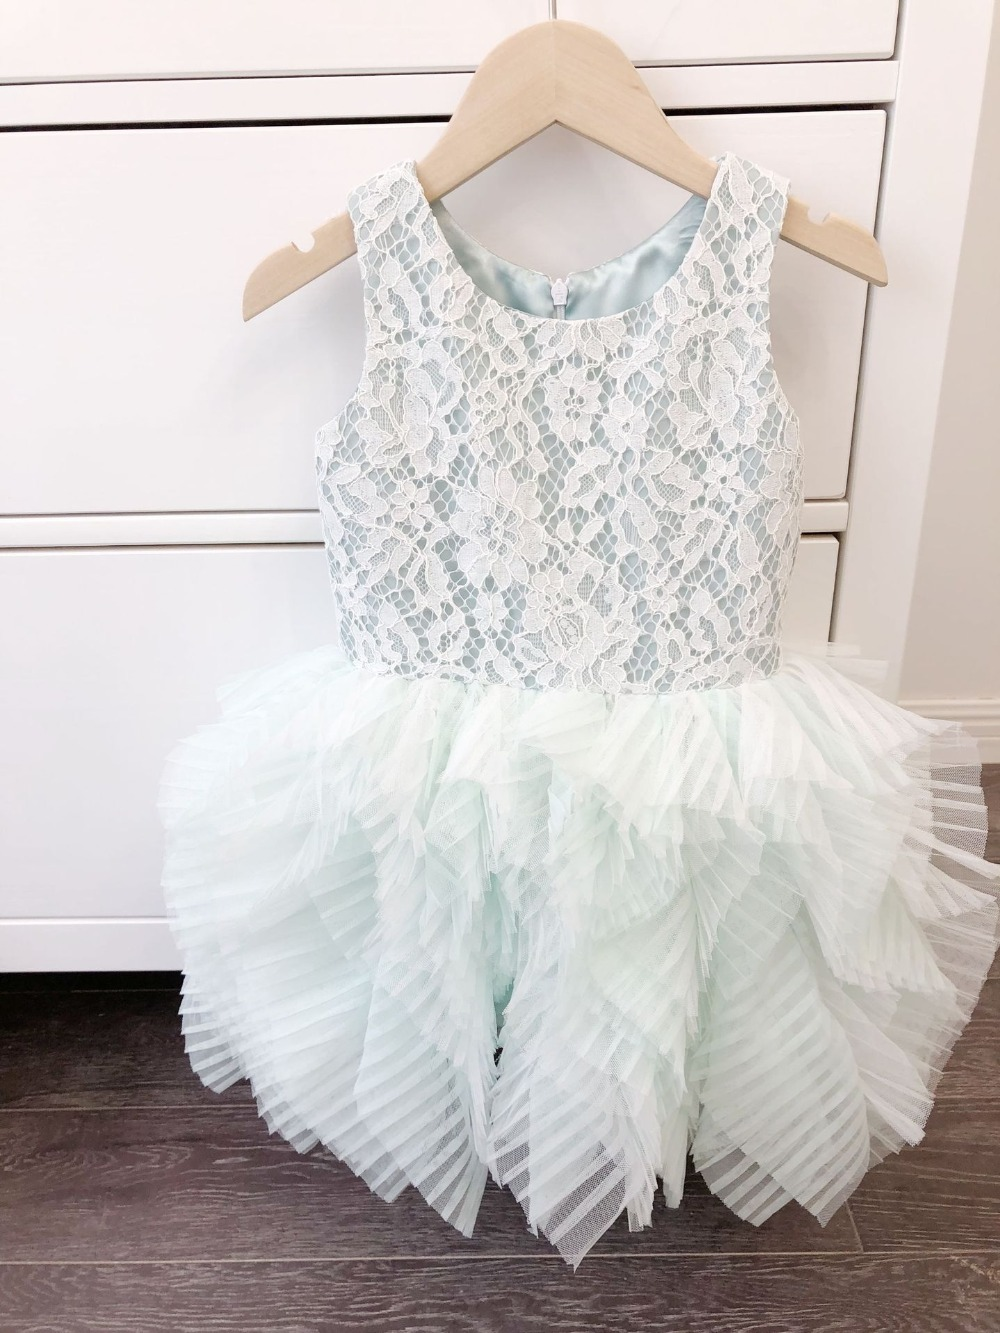 kids dresses for girls baby clothes girl lace flower summer princess dresses high quality tutu dress girls party dresses 2018 summer new girls clothing lace mesh splicing baby dresses for girl party princess dress fashion petal kids girls dresses